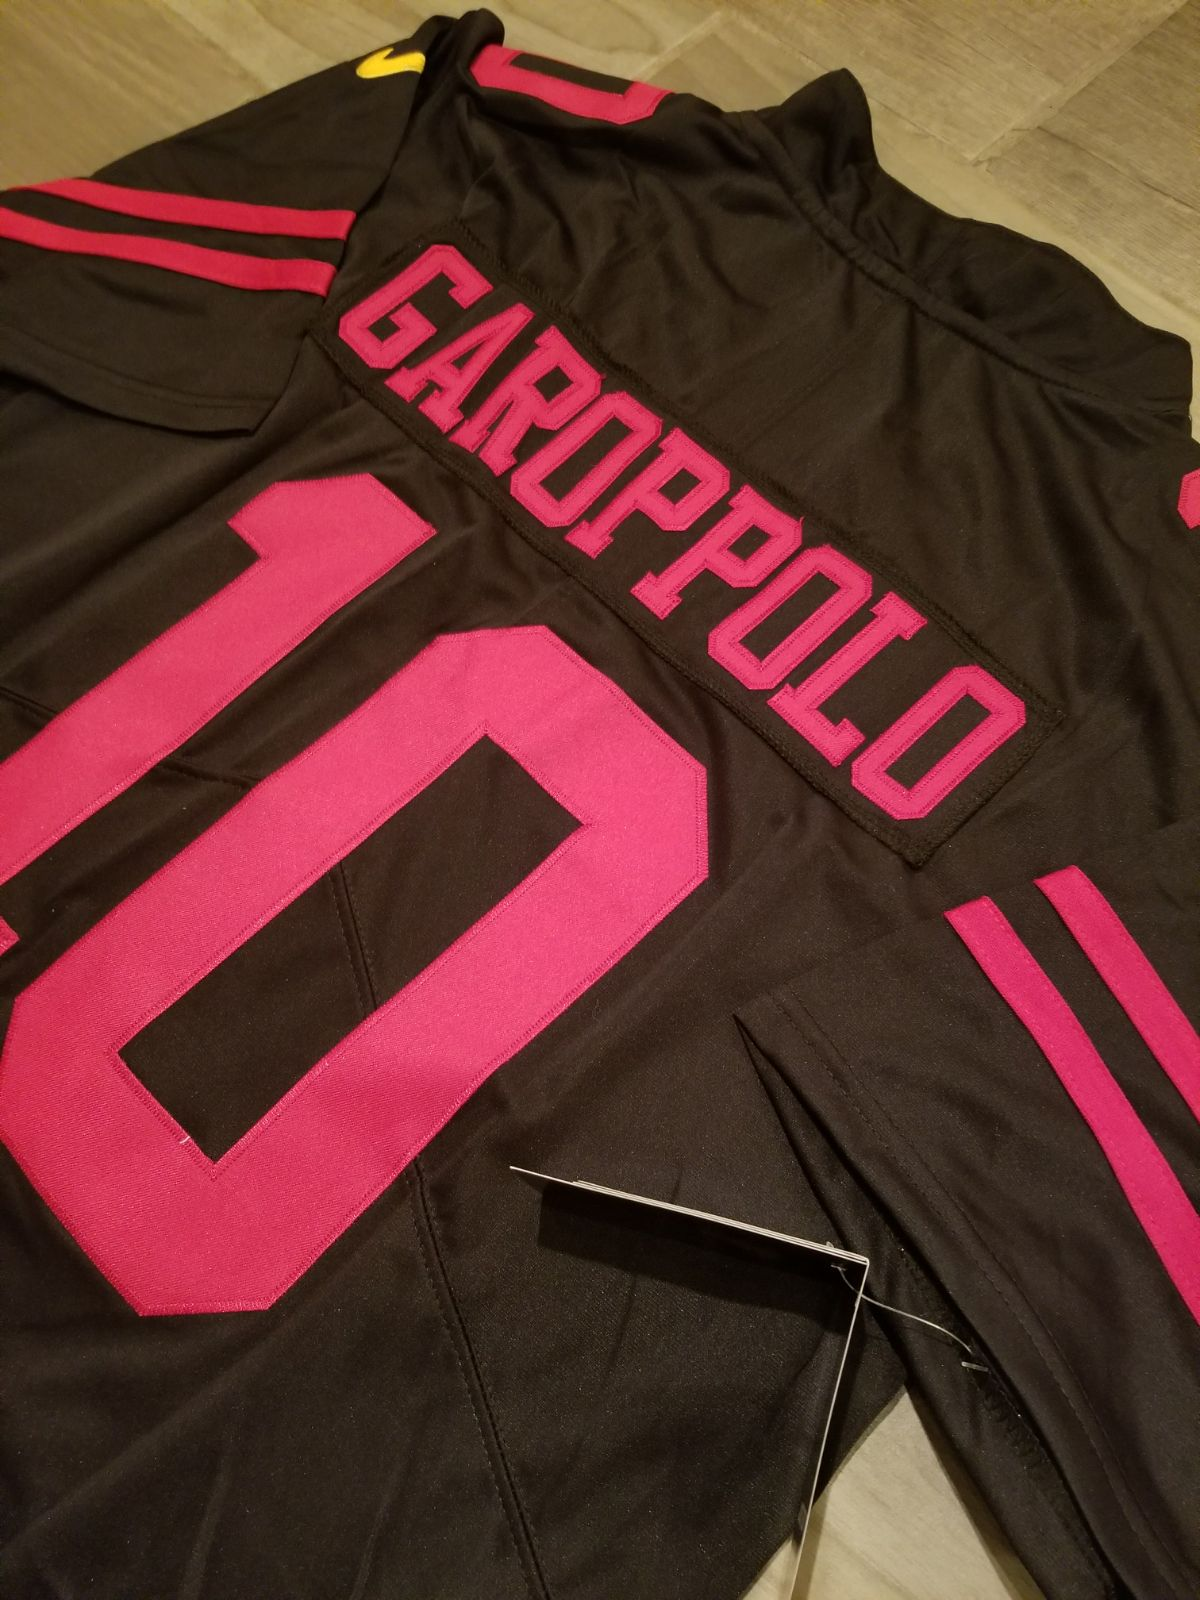 49ers Jimmy Garoppolo color rush jersey